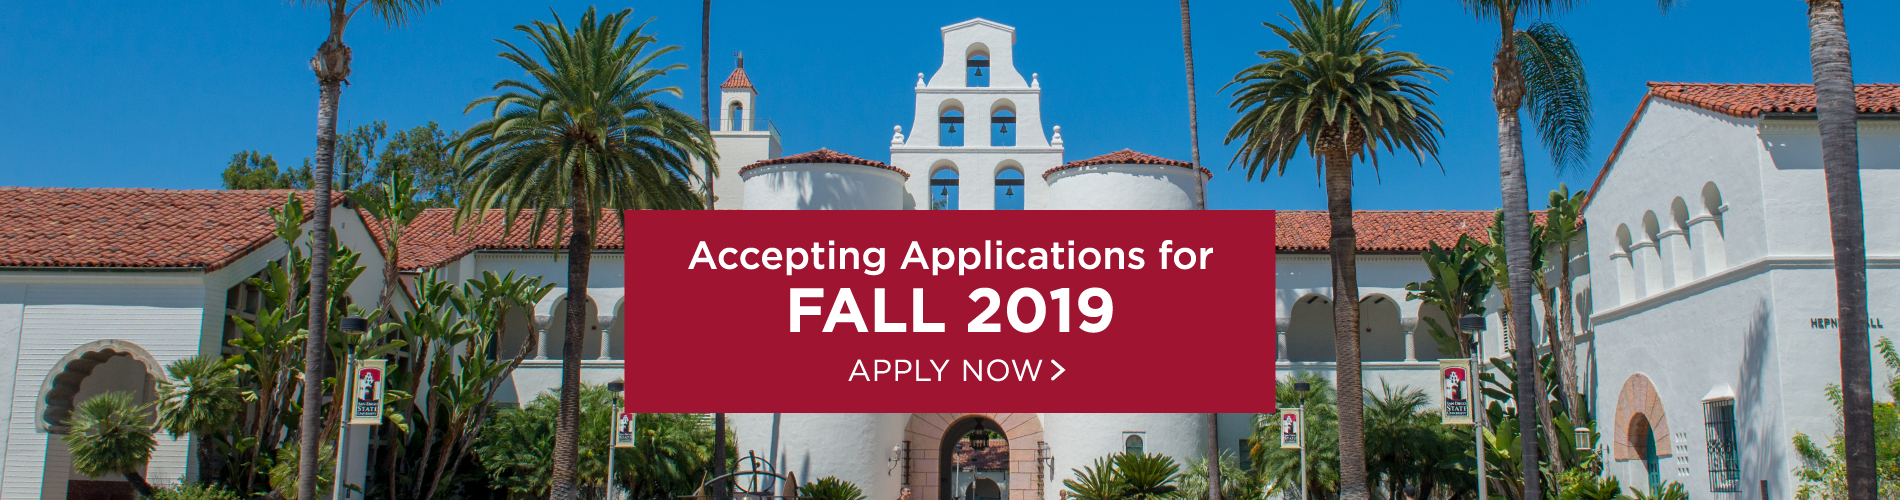 Now accepting applications for fall 2019.